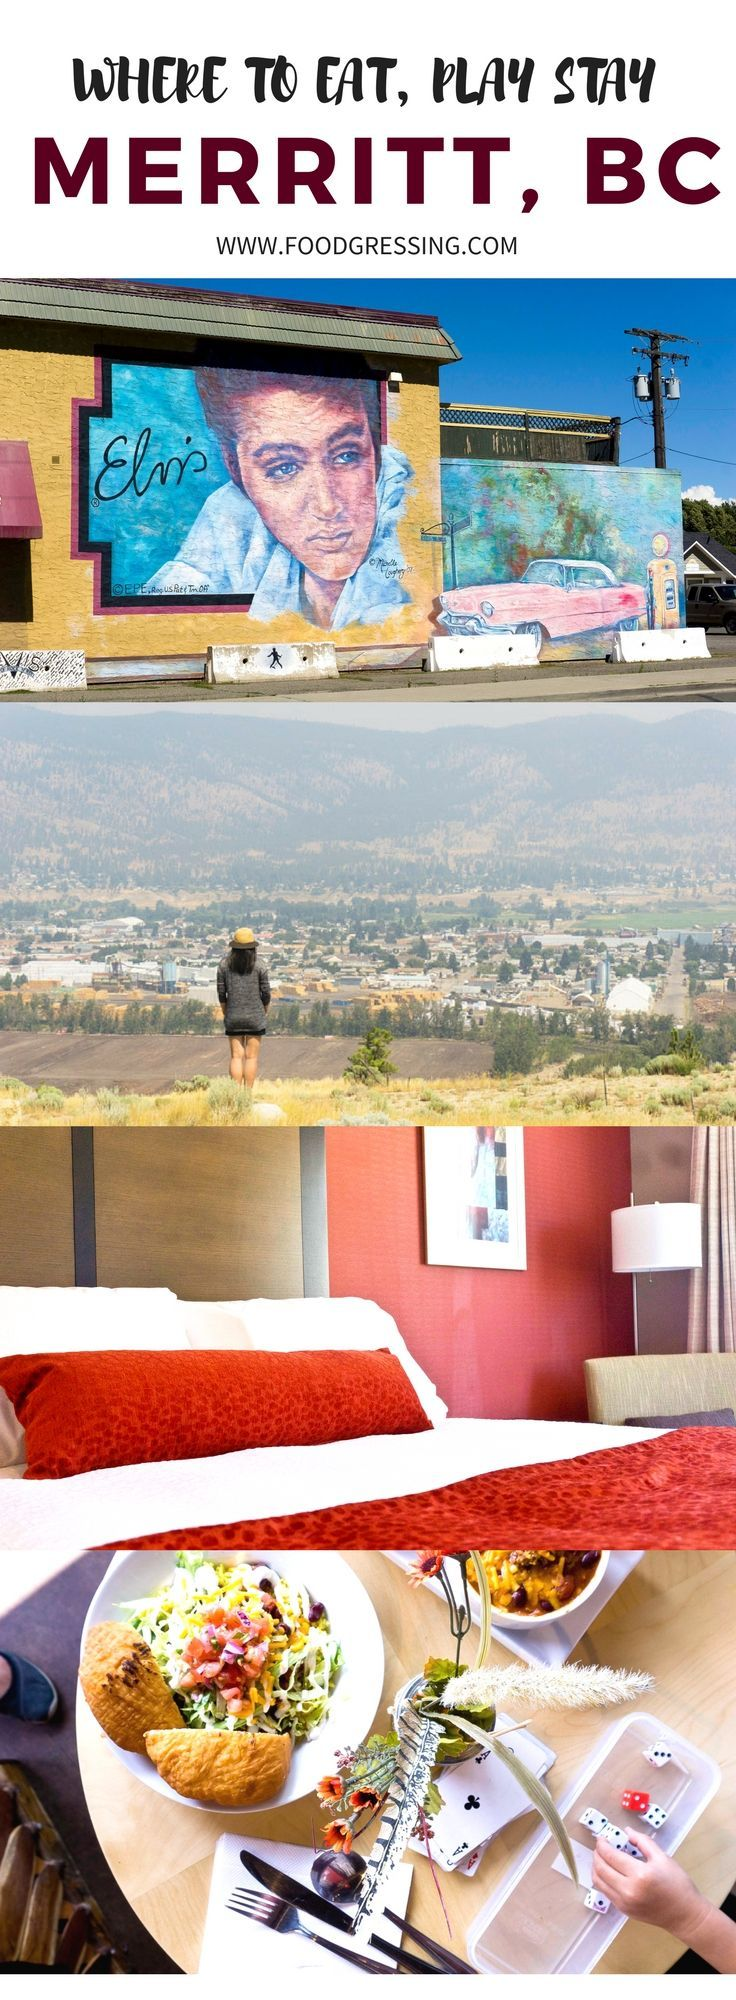 Where to Eat, Play and Stay in Merritt BC Canada #Merritt | Merritt BC Canada | Merritt BC Canada Travel | Merritt BC Canada Things To Do | Merritt BC Canada Vacation | Merritt BC Canada Weekend | What to do in Merritt BC Canada | Merritt BC Canada Attractions